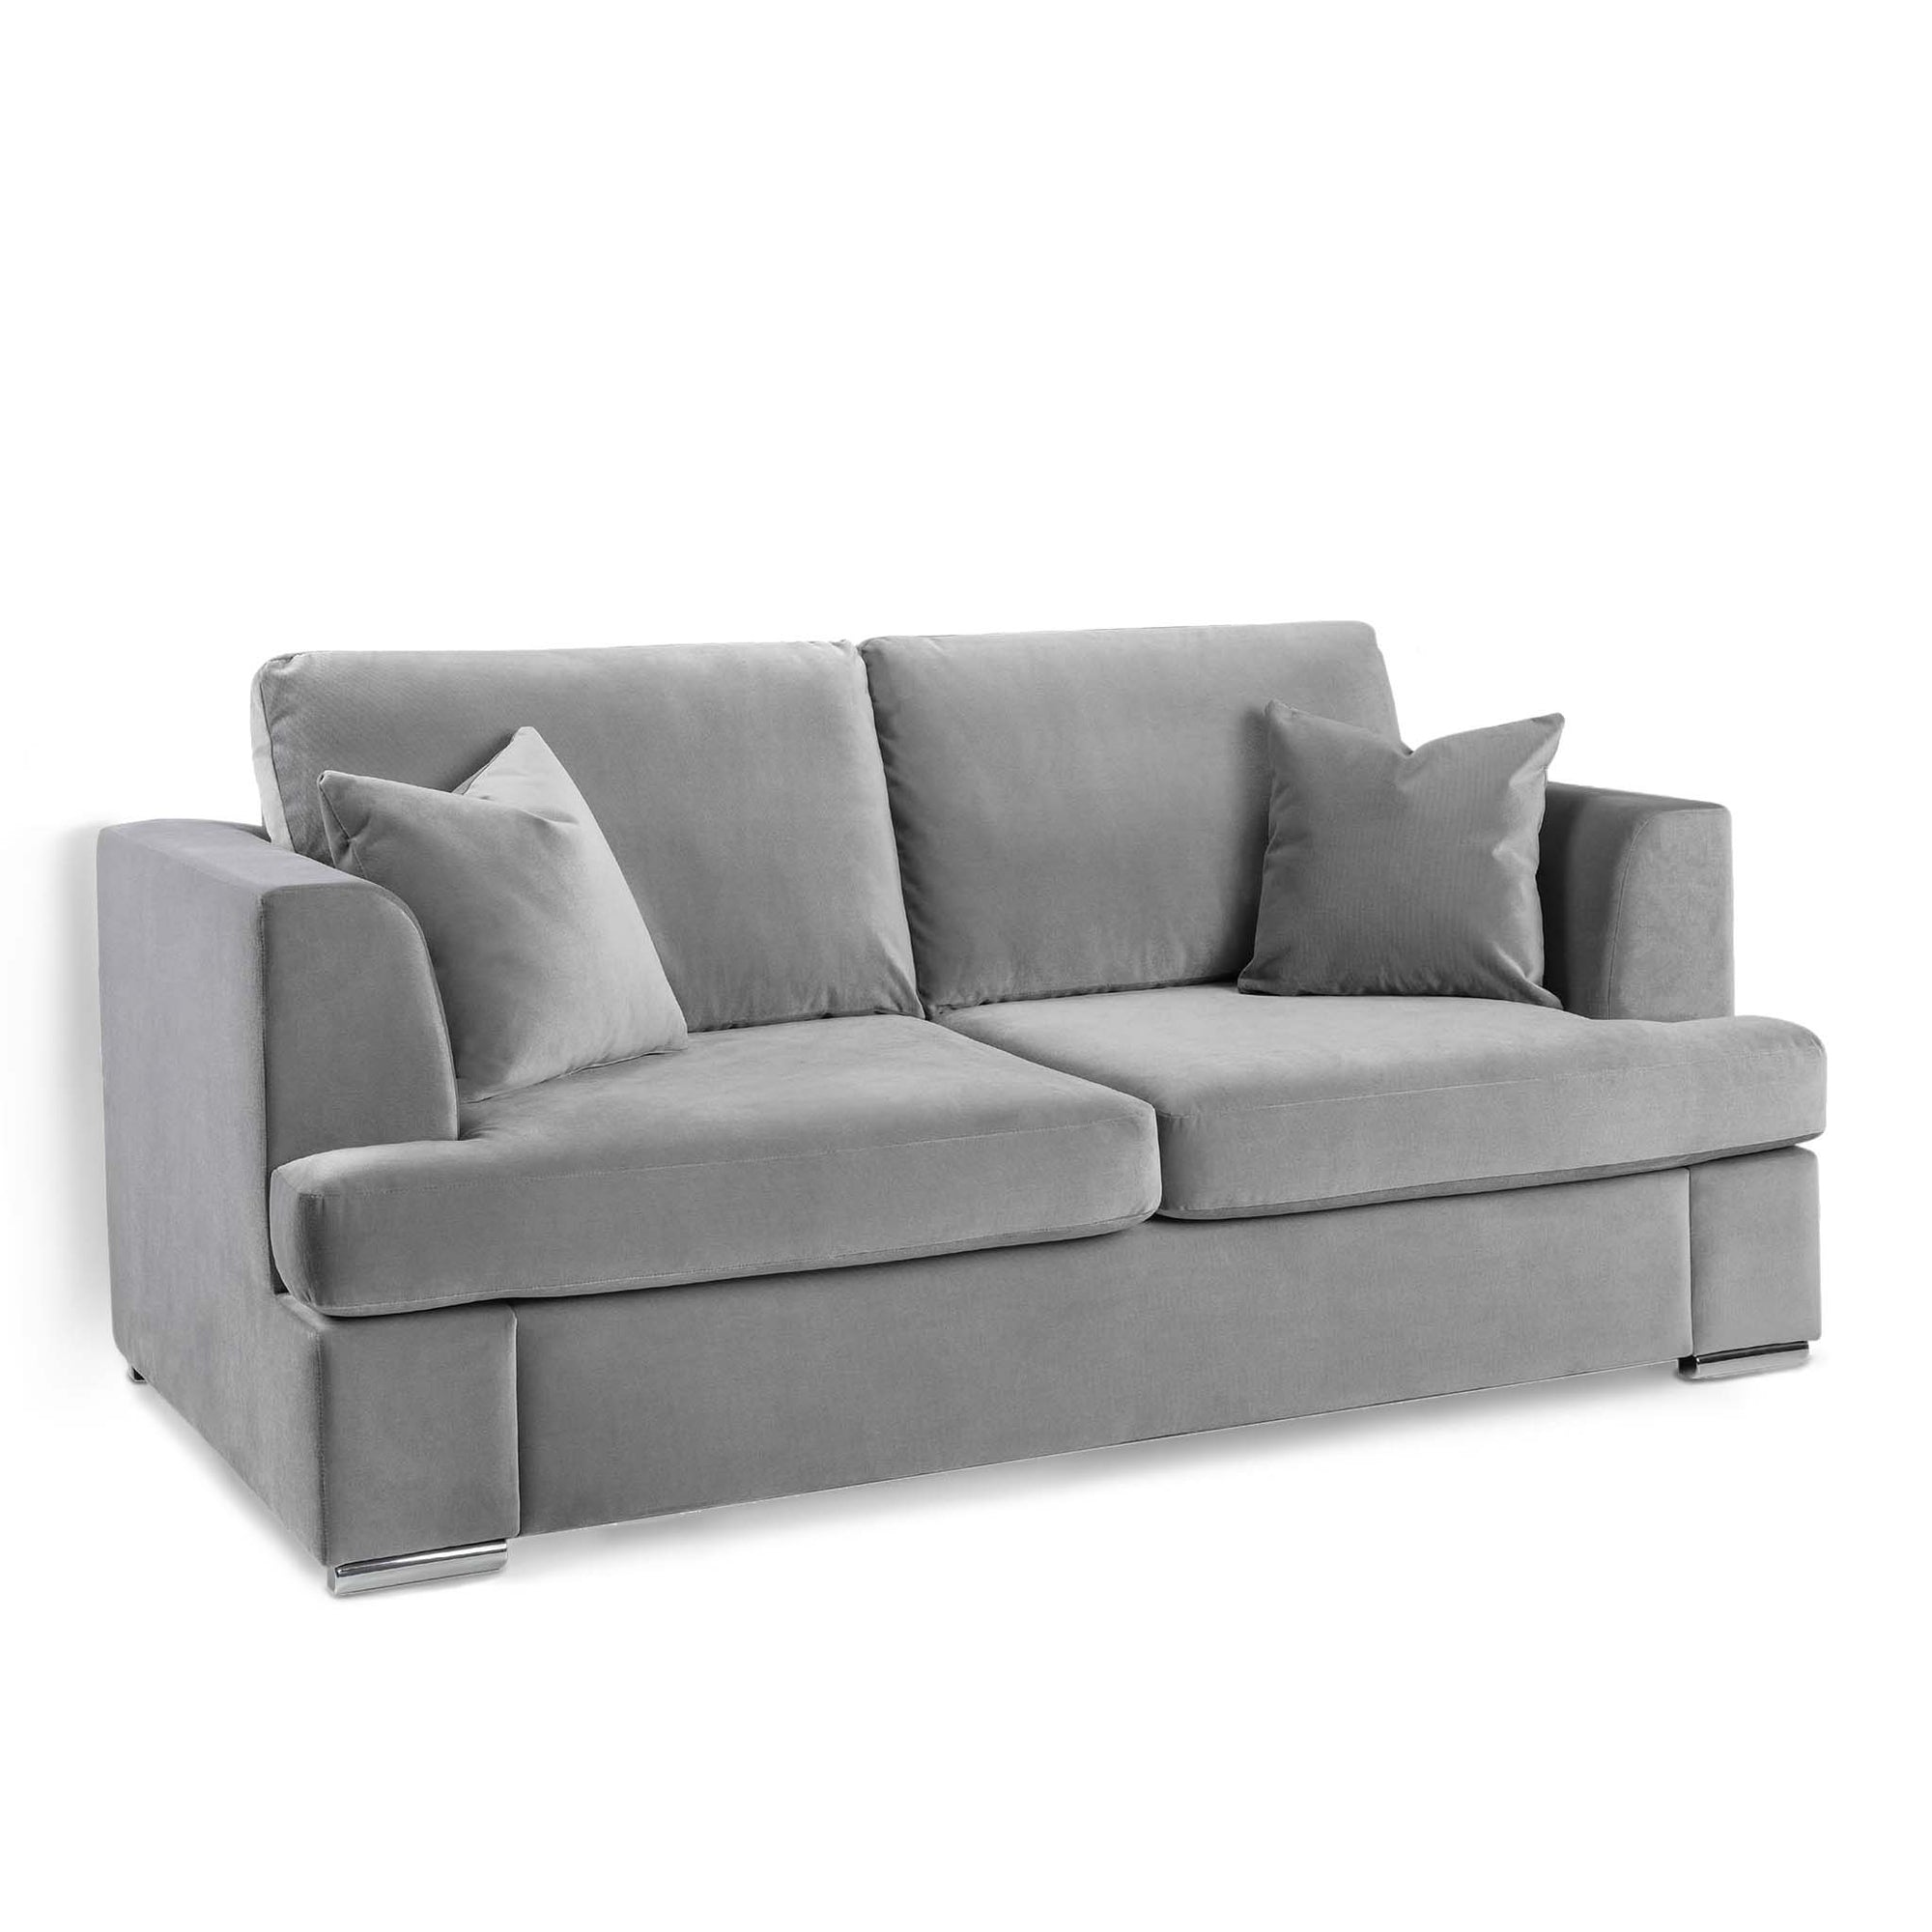 Felice Grey 3 Seater Sofa by Roseland Furniture